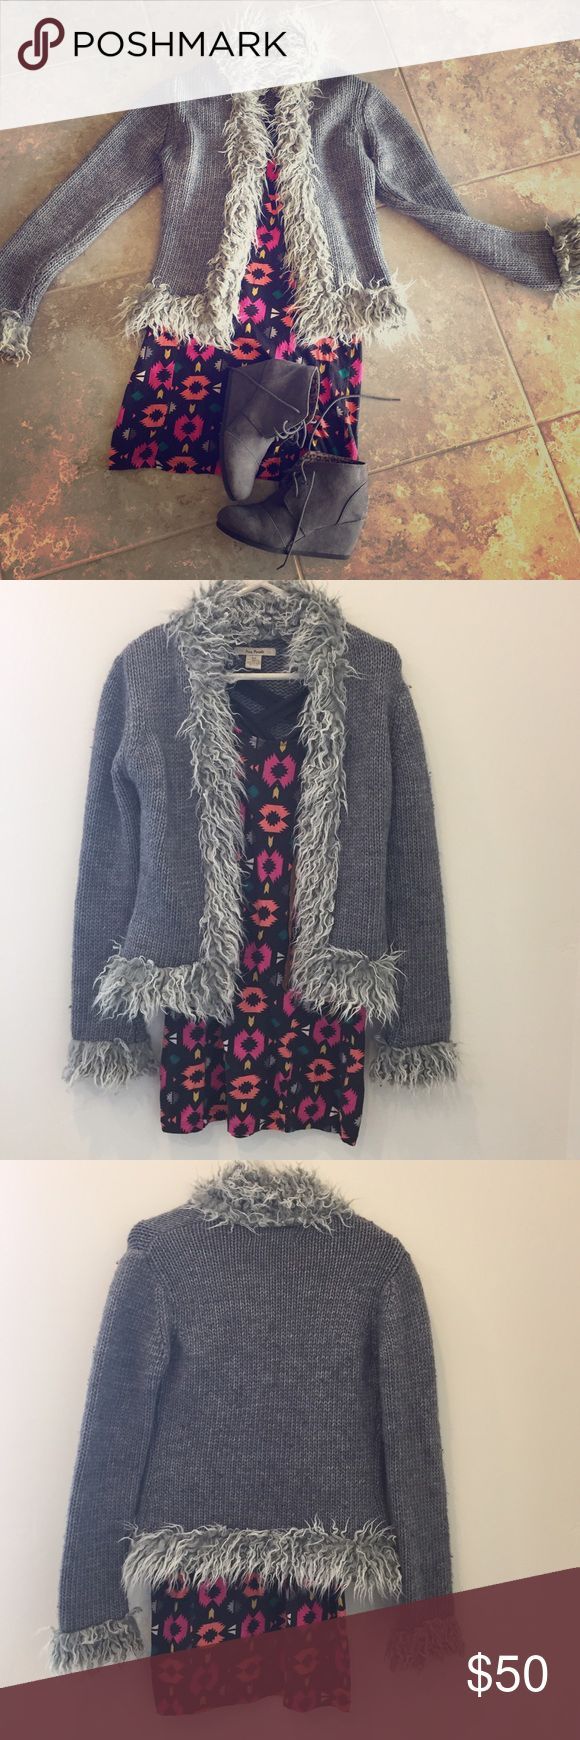 Free people gray cardigan with fur, size small Gently used free people gray cardigan with fur, size small. 50% Acrylic, 50% wool. Dress also for sale in my closet :) Free People Sweaters Cardigans